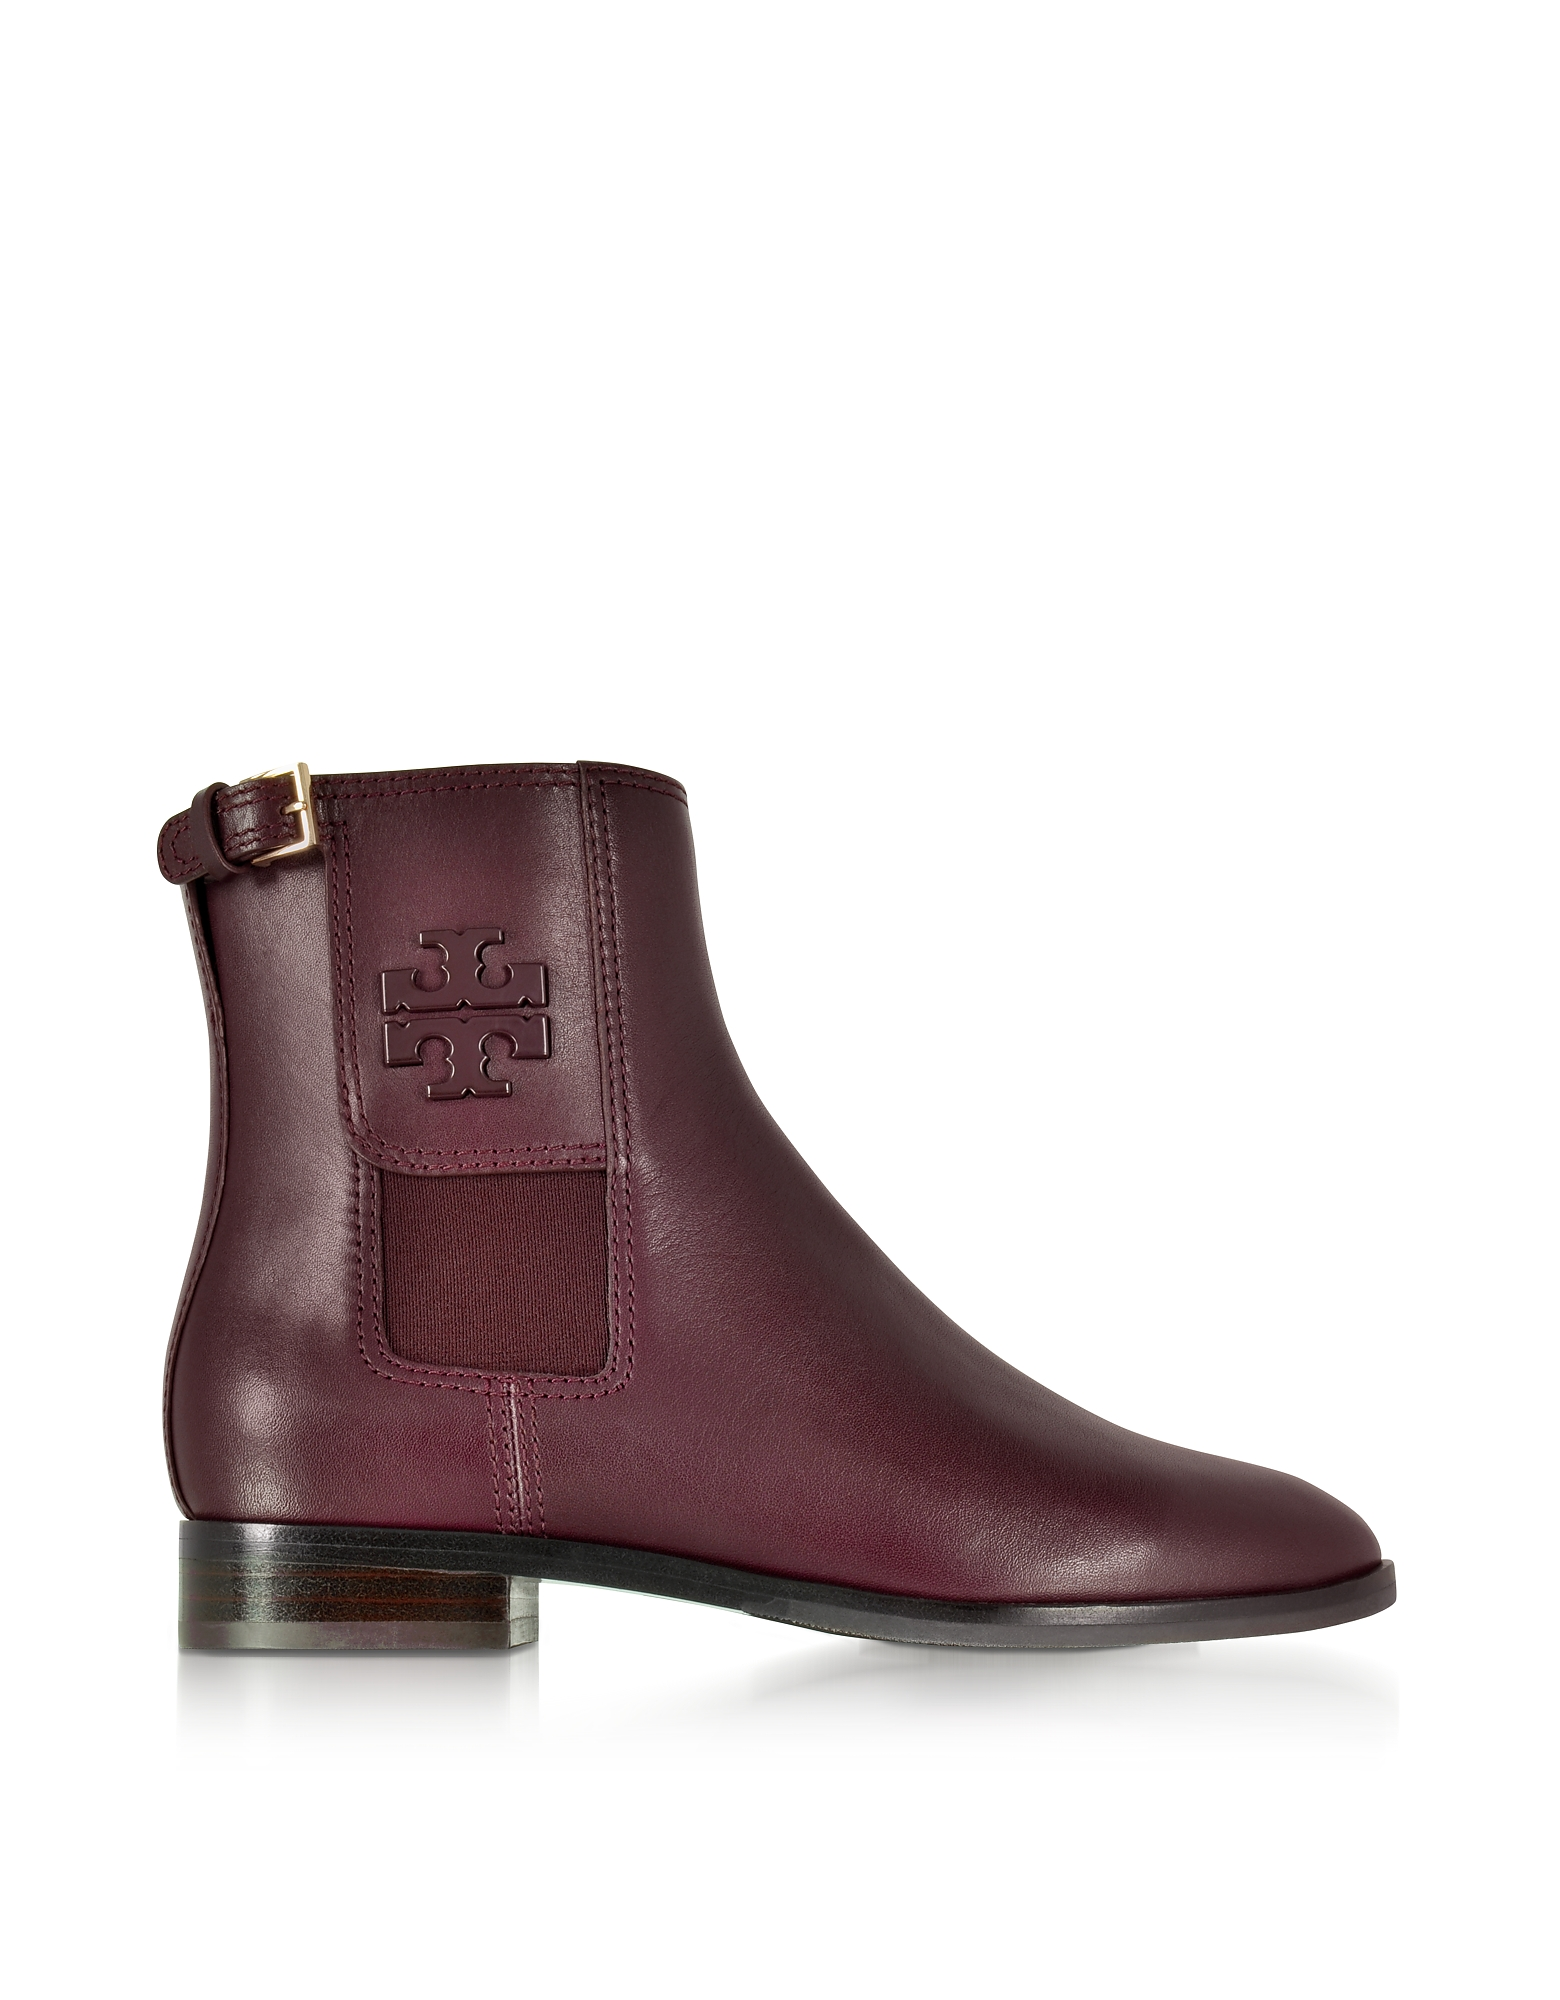 Tory Burch Shoes, Wyatt Maroon Leather Bootie